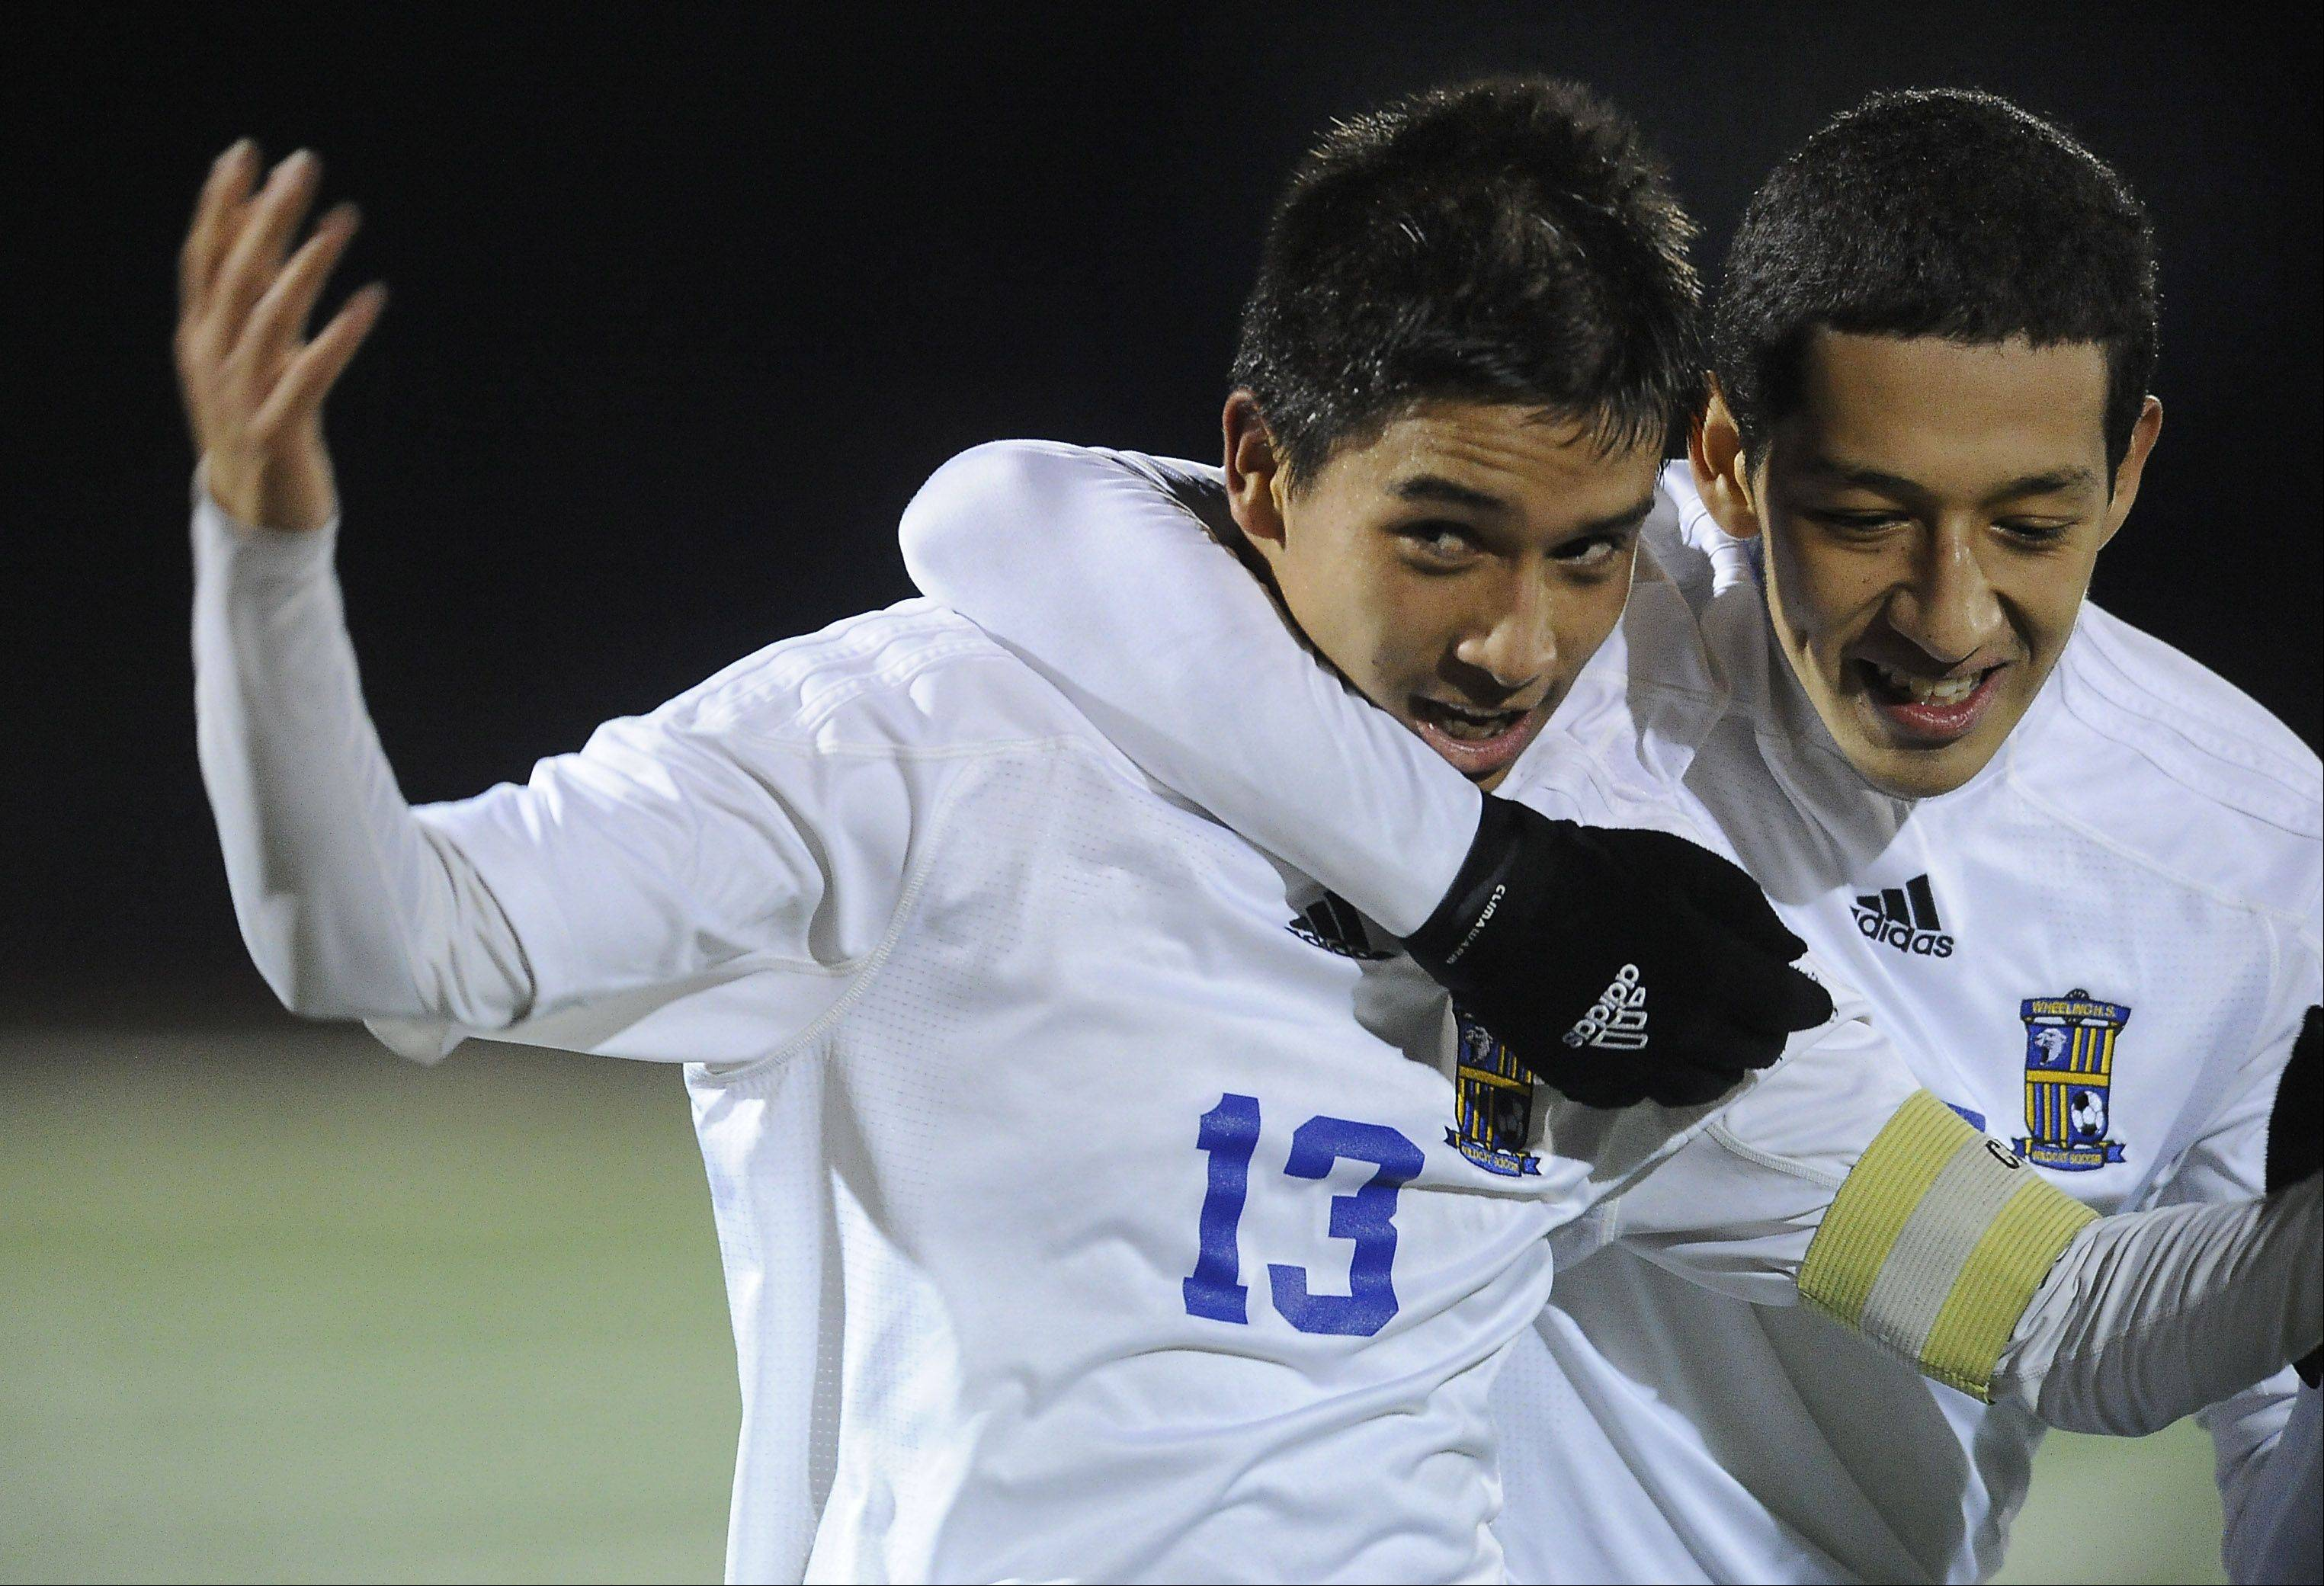 Wheeling's Jose Garcia and teammate Michael Hernandez celebrate a Wildcats goal in their 2-1 decision against Barrington in the Class 3A supersectional at Hersey on Tuesday.